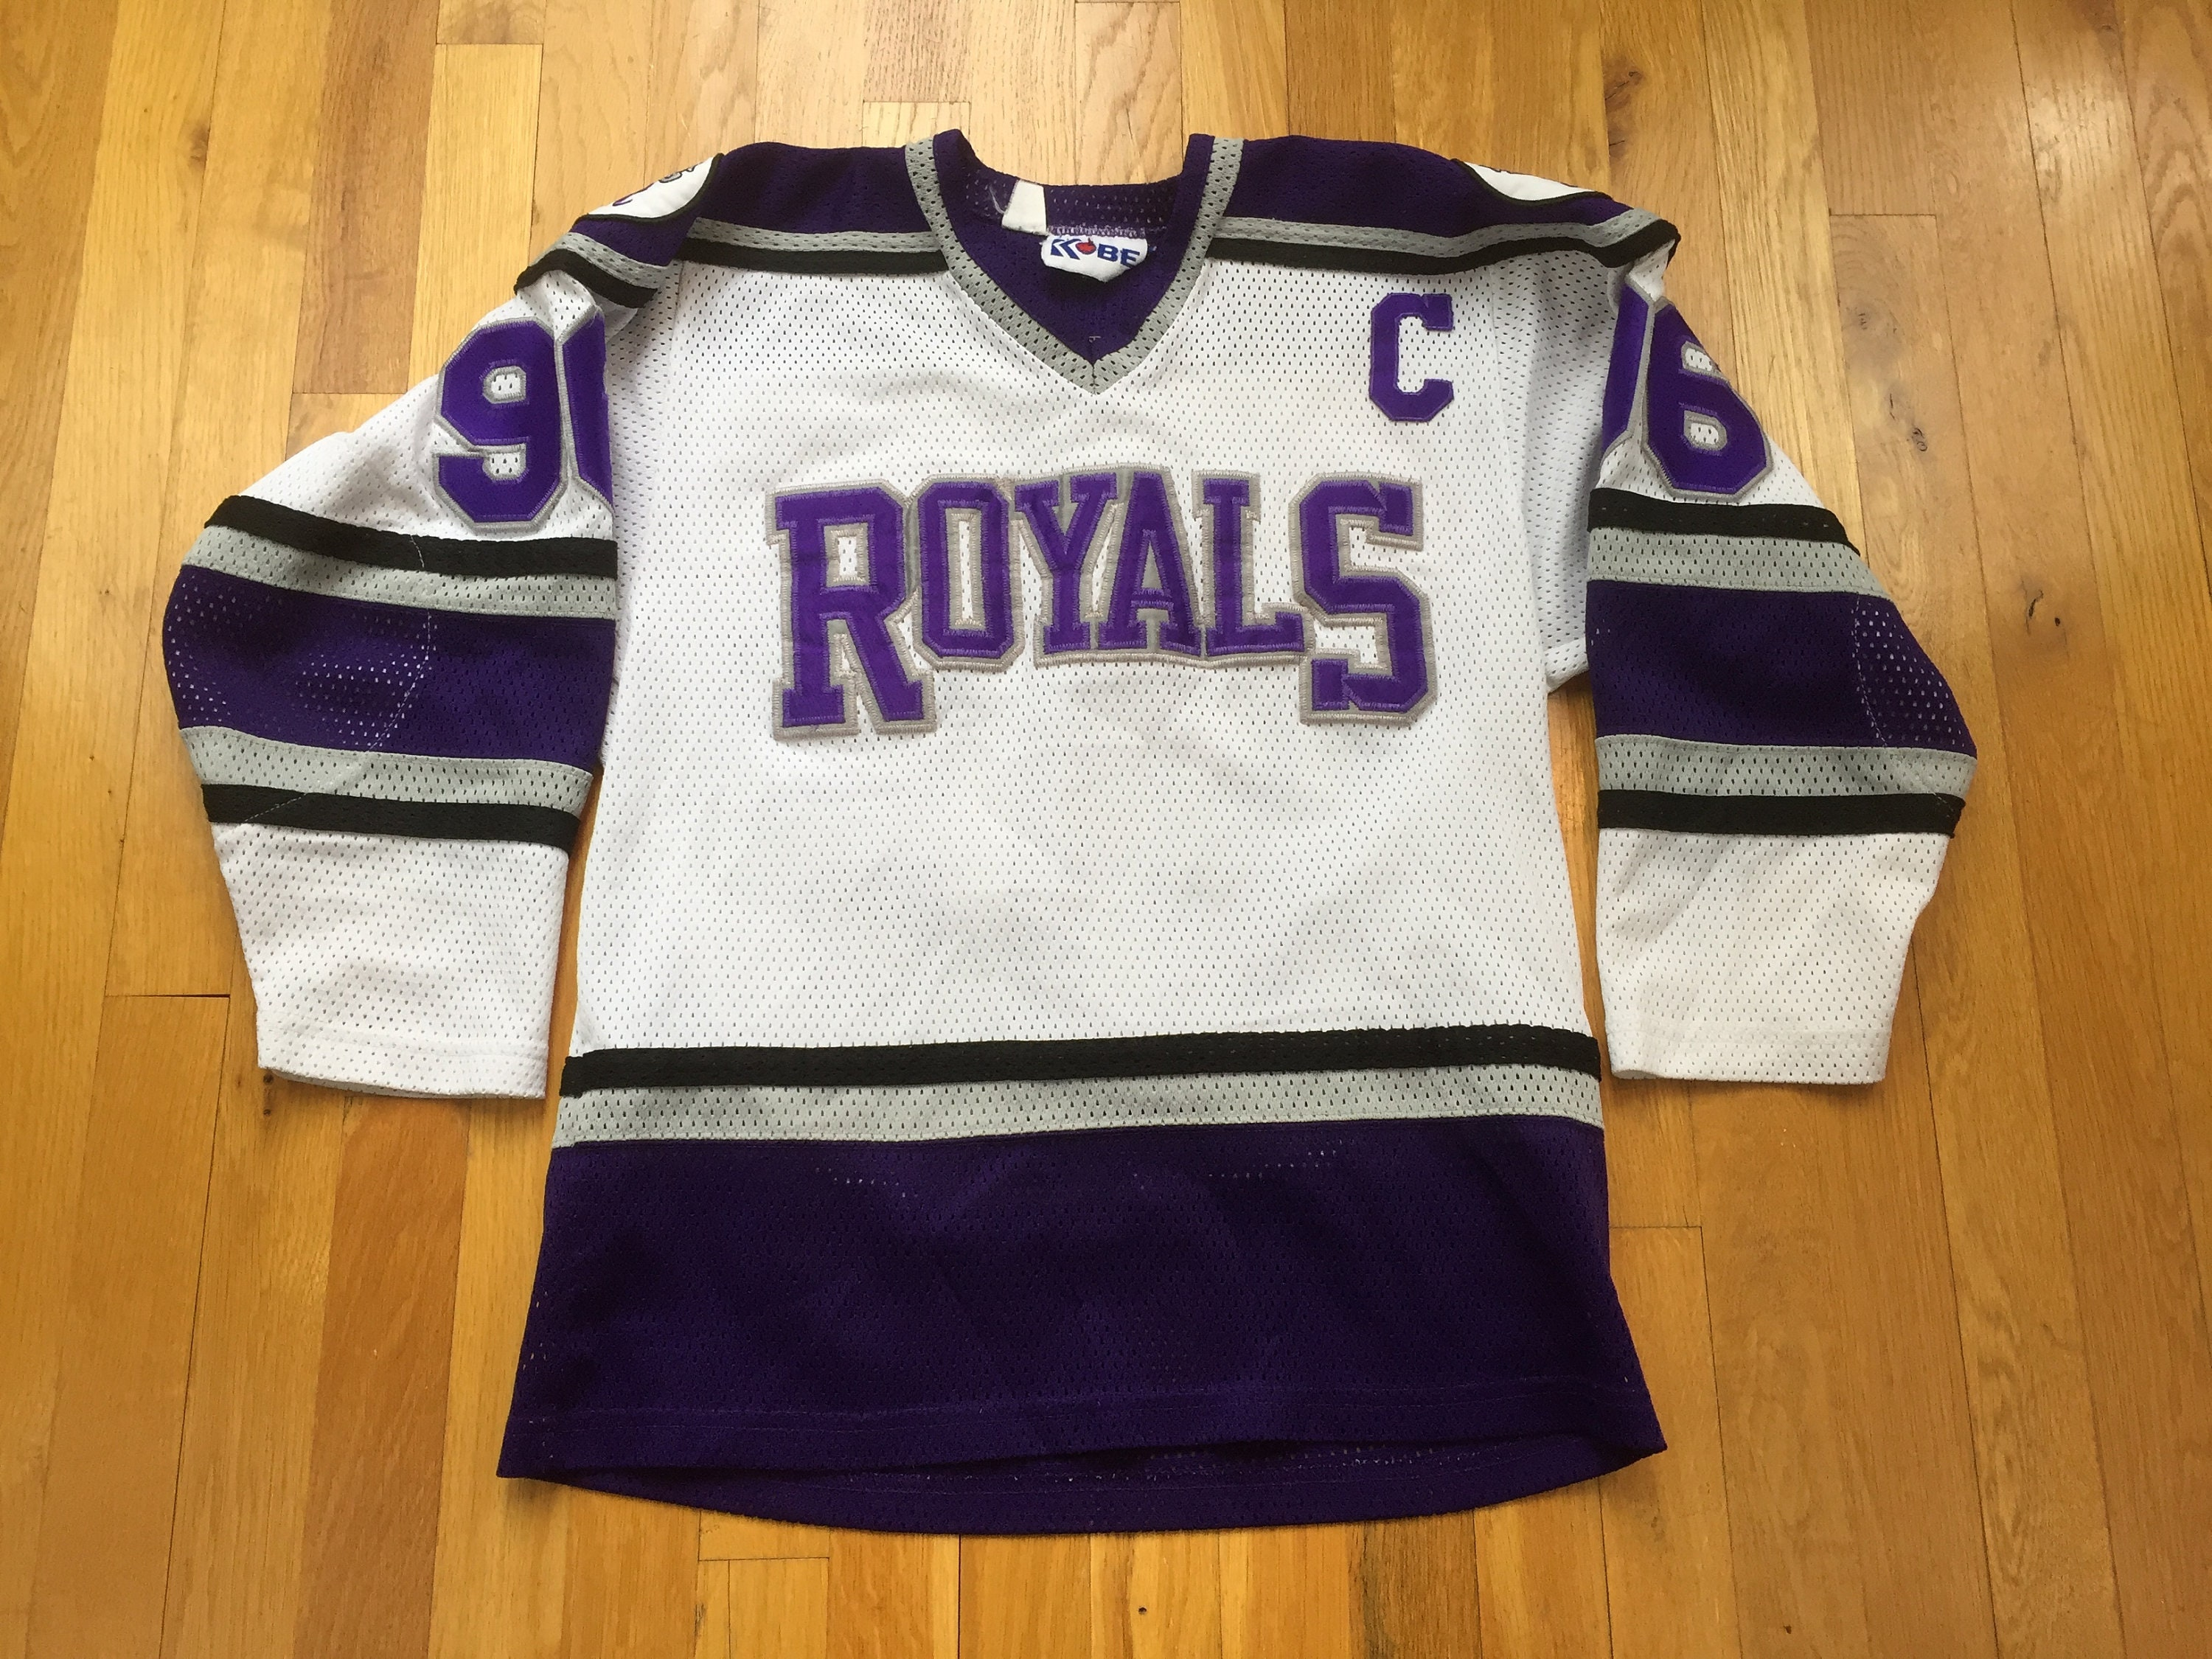 Vintage Richmond Royals Hockey Jersey size M white purple  9613ea86fd7